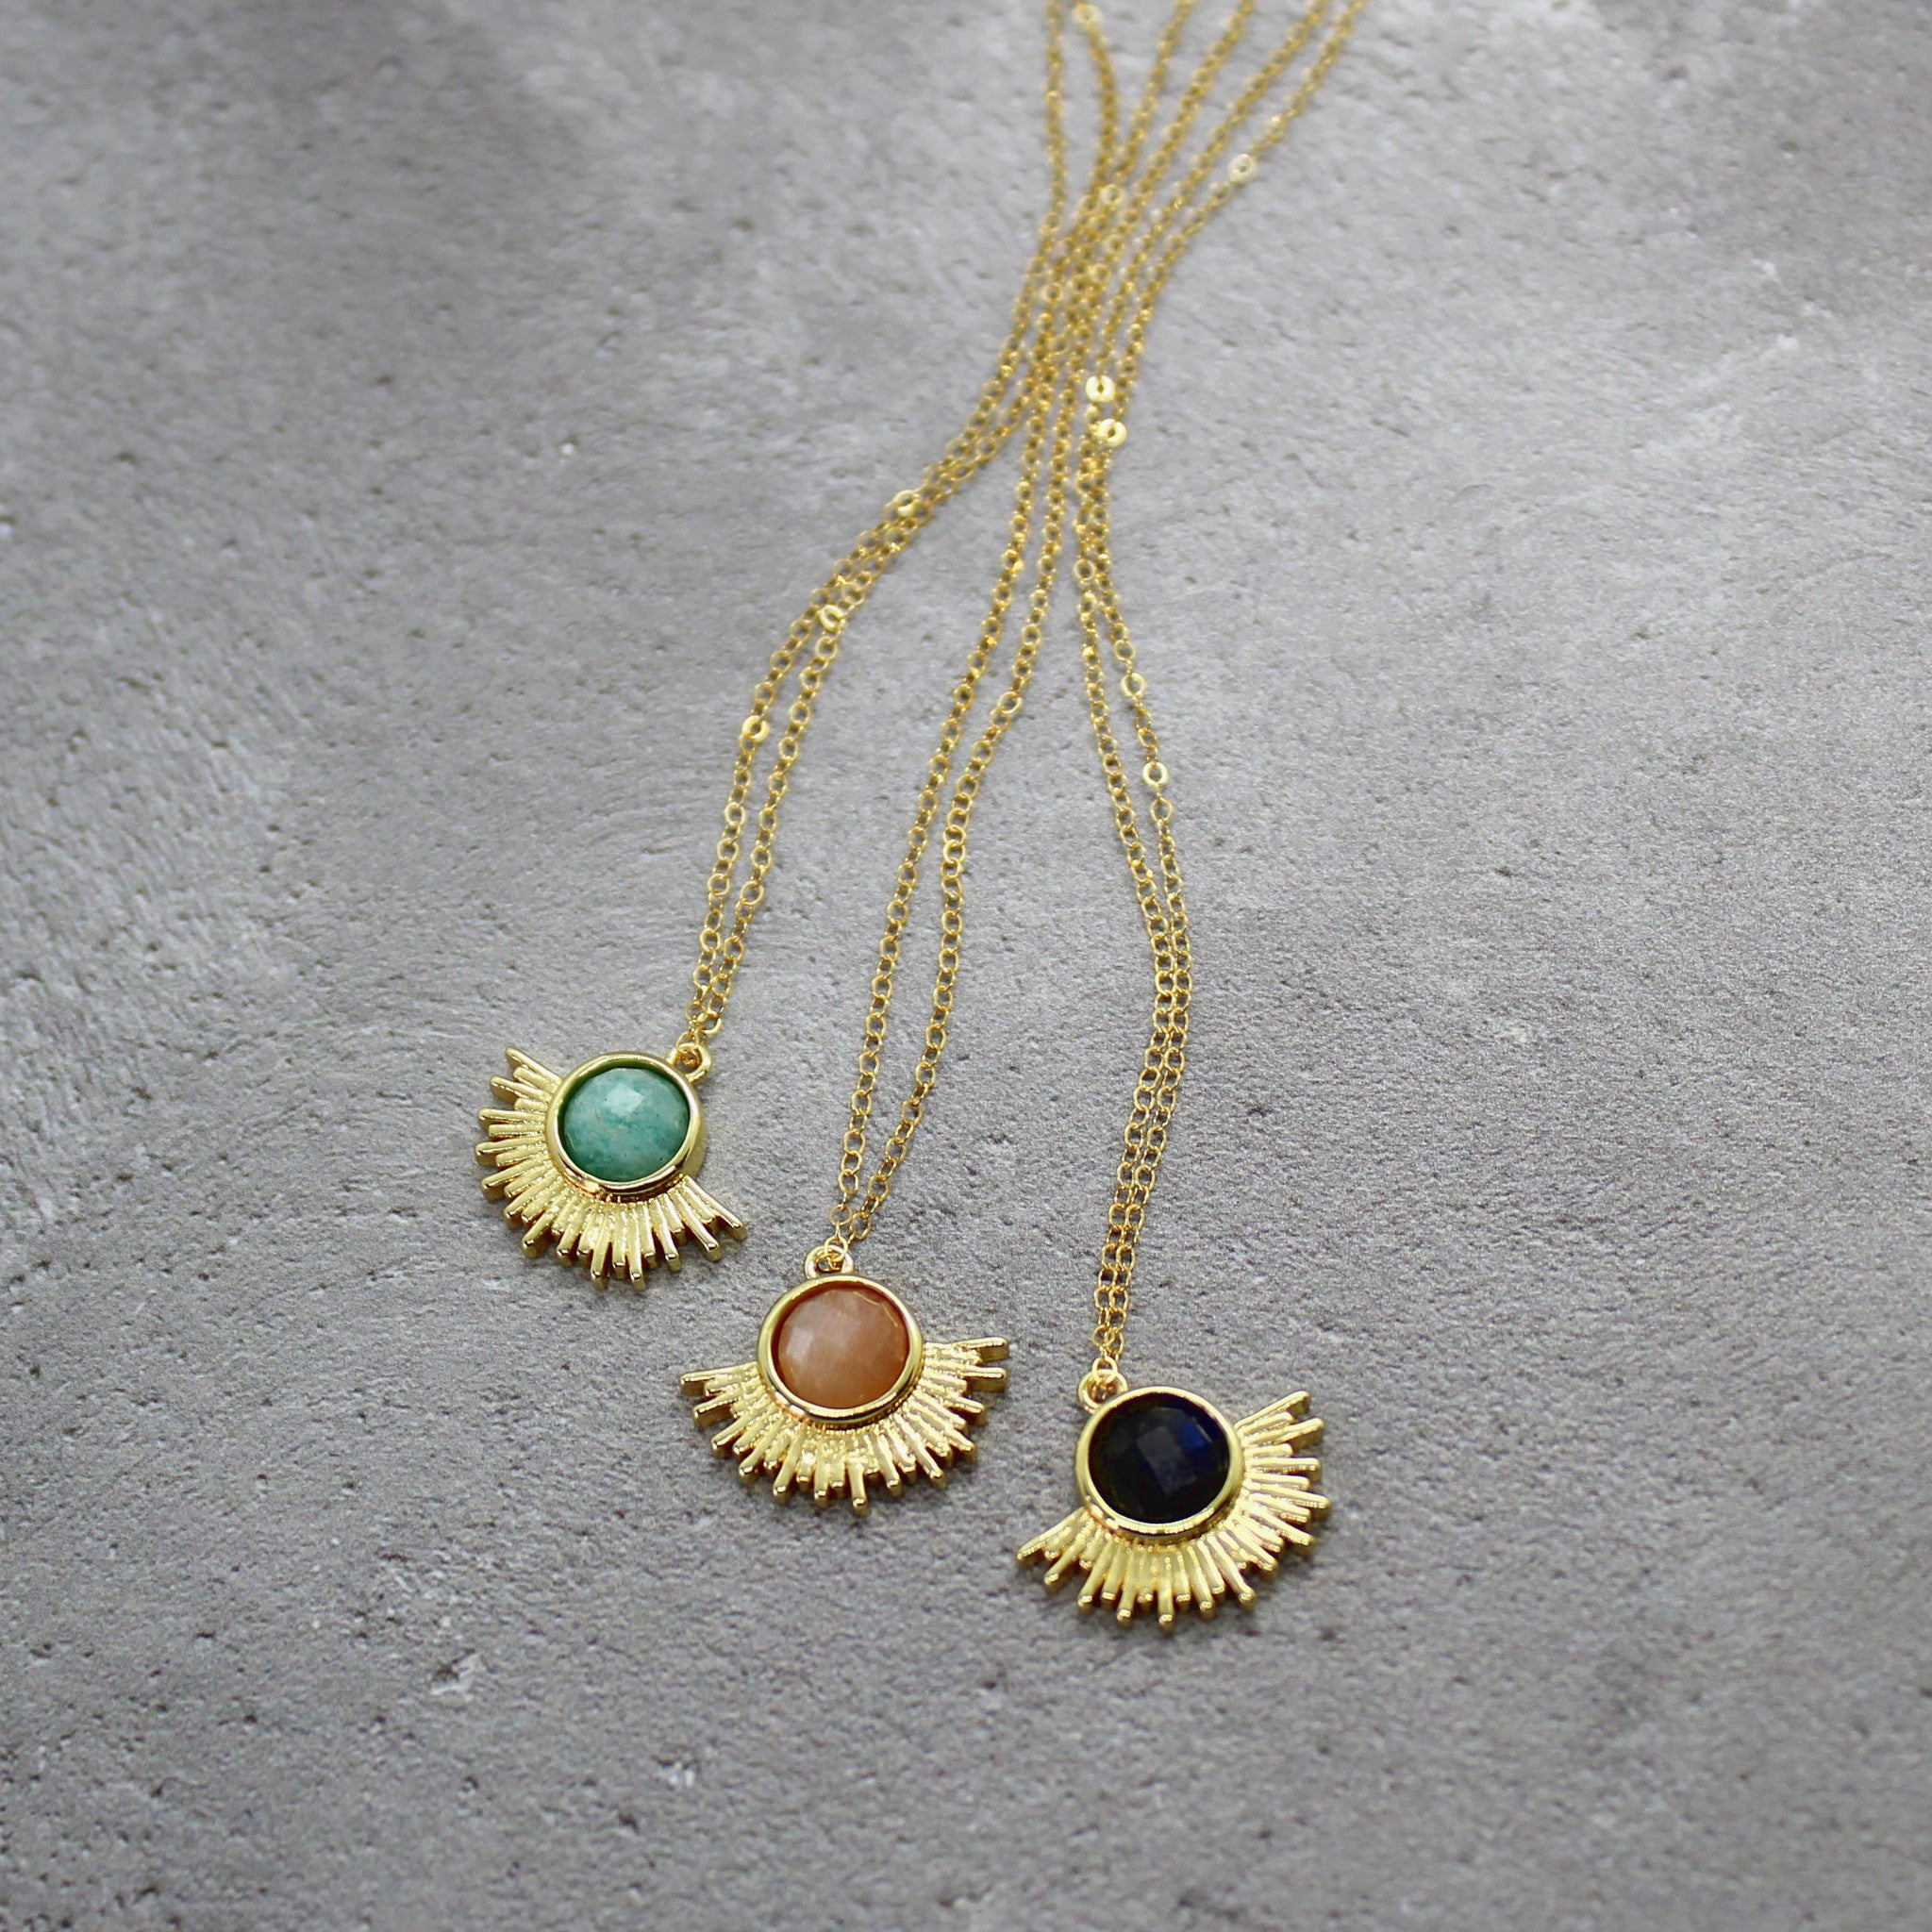 Gold bezel stone necklace - Mara studio